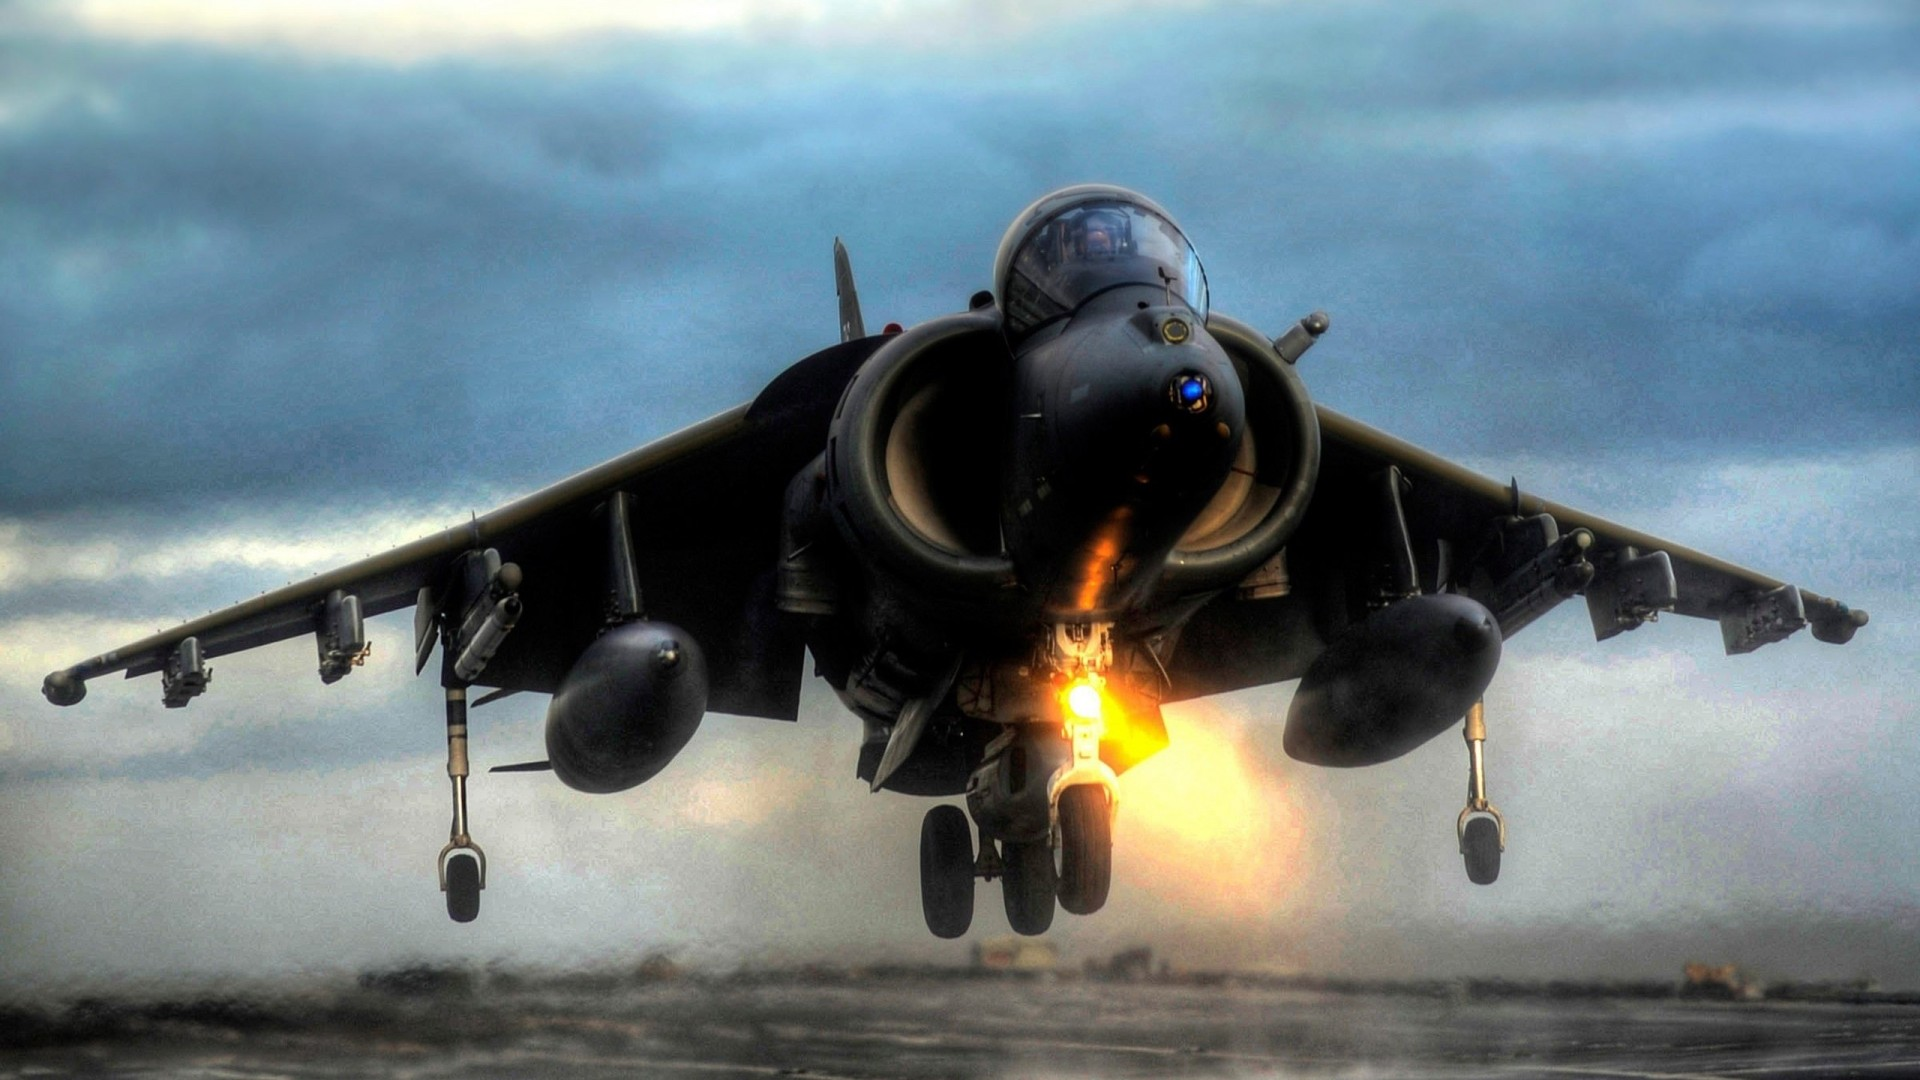 A Harrier Jump jet. Source - Net.